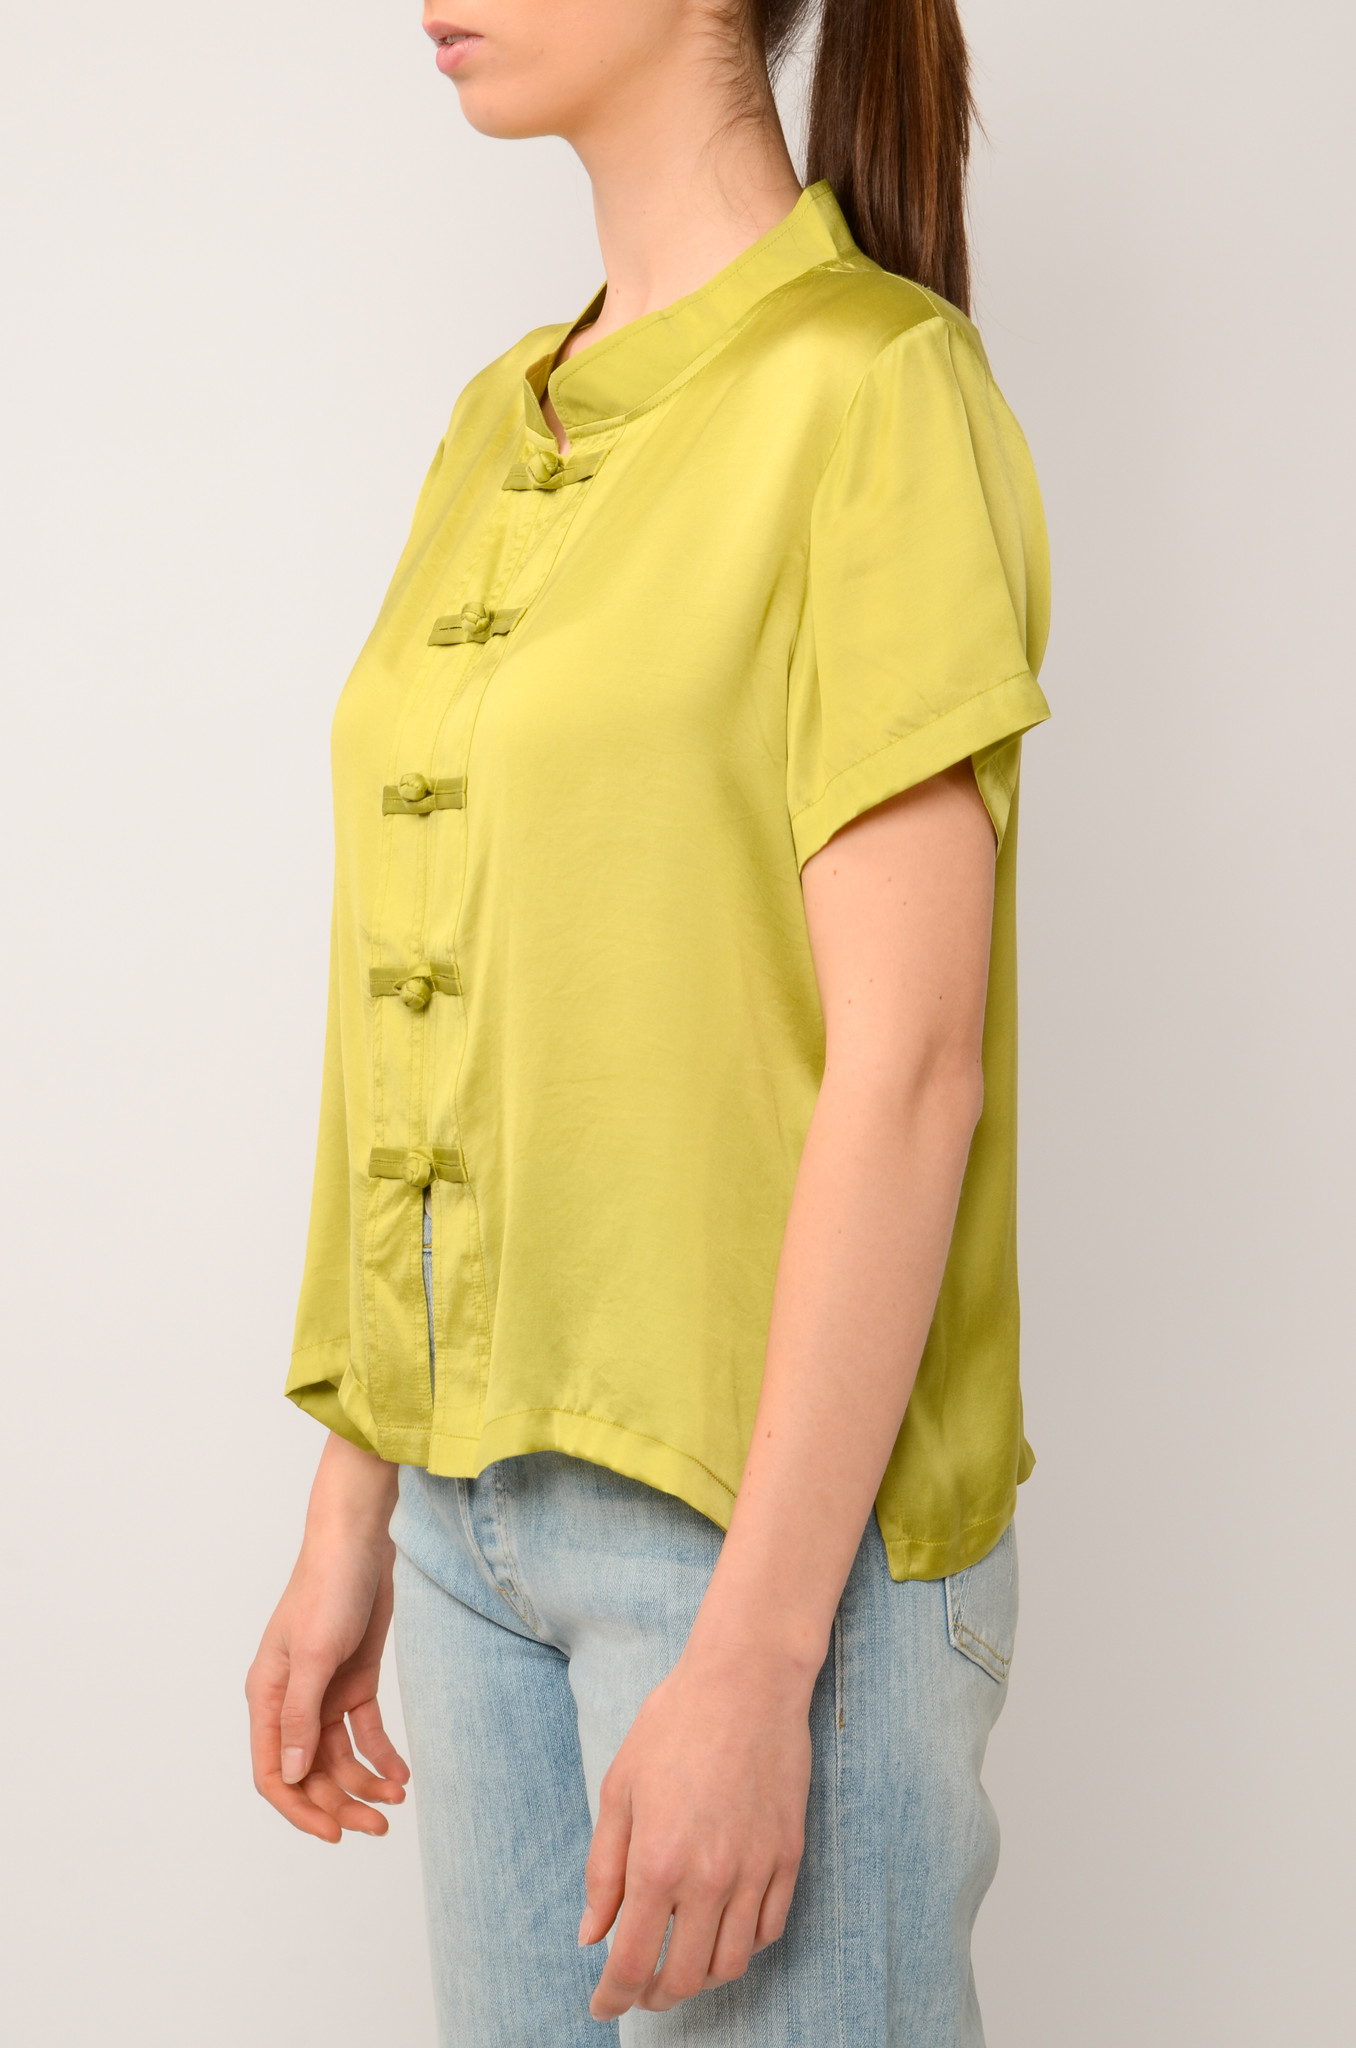 LOTUS TOP IN OLIVE-3